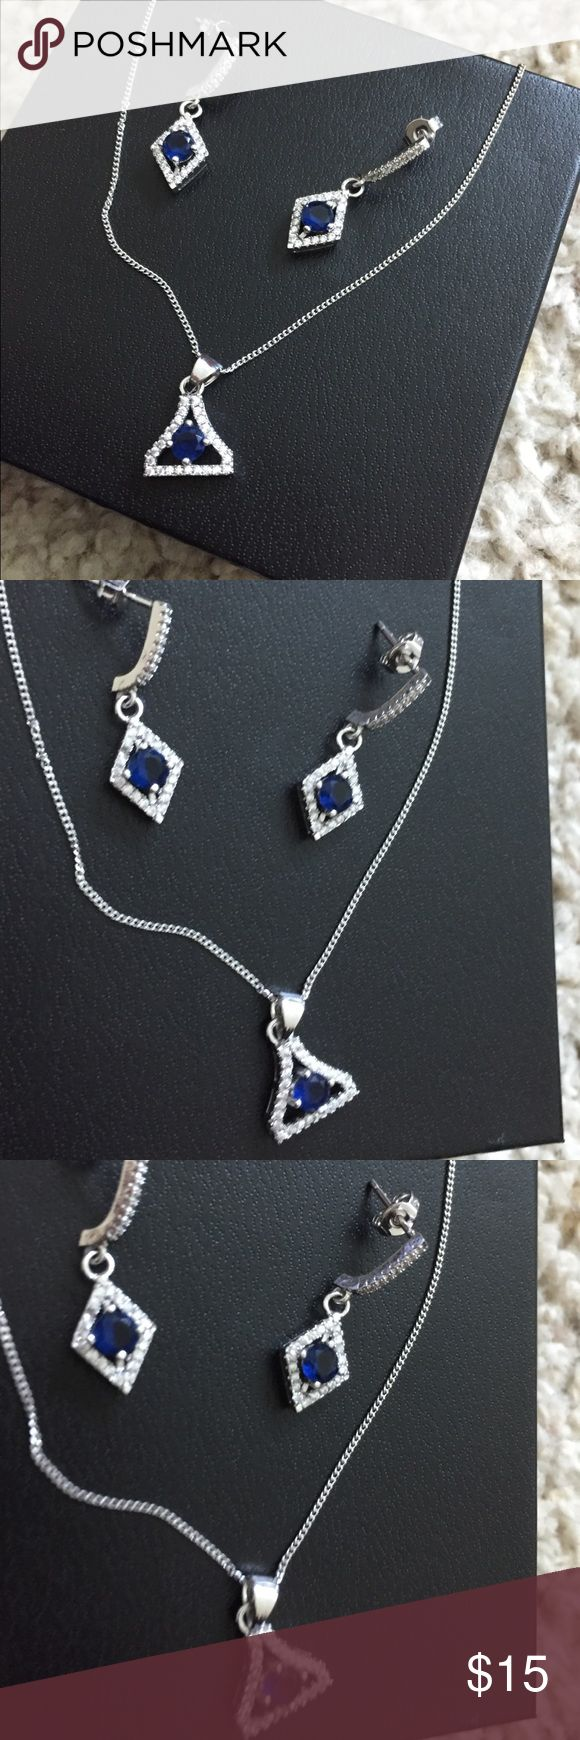 Genuine crystal, navy blue necklace/ earrings set Genuine crystal, navy blue necklace and earrings set. Brand new. Bought for me randomly by my boyfri…